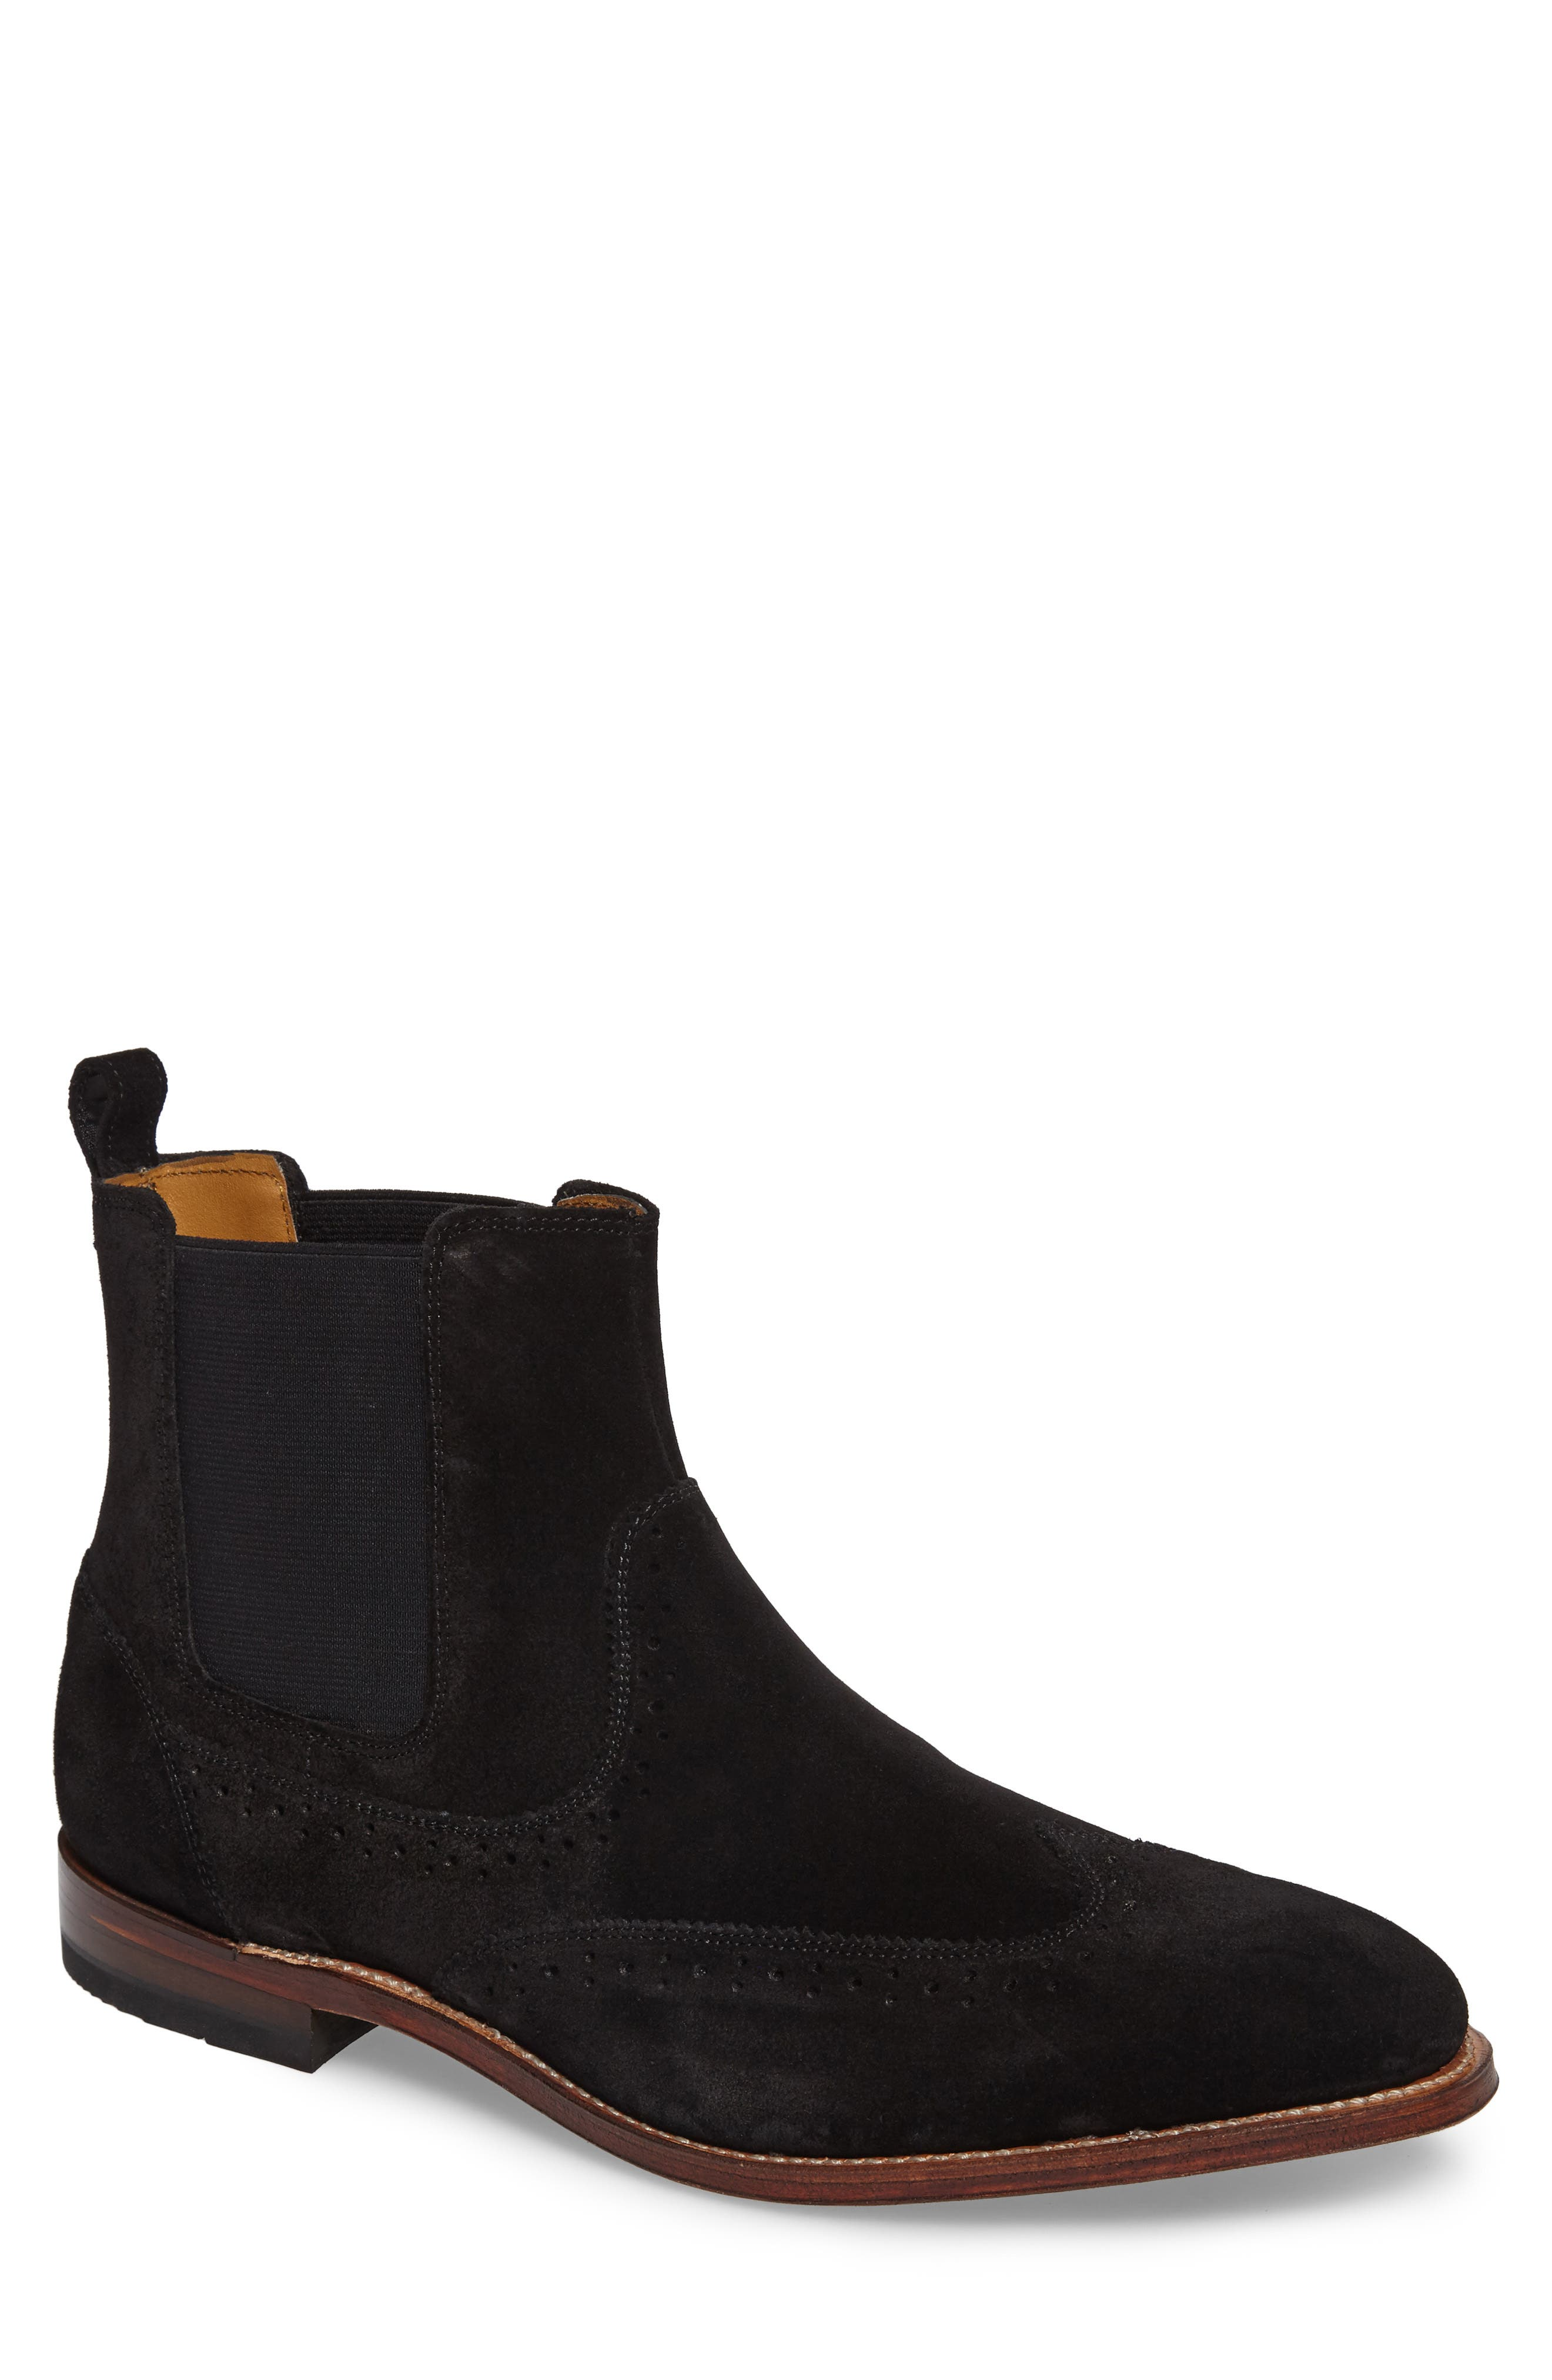 STACY ADAMS, Madison II Wingtip Chelsea Boot, Main thumbnail 1, color, BLACK SUEDE